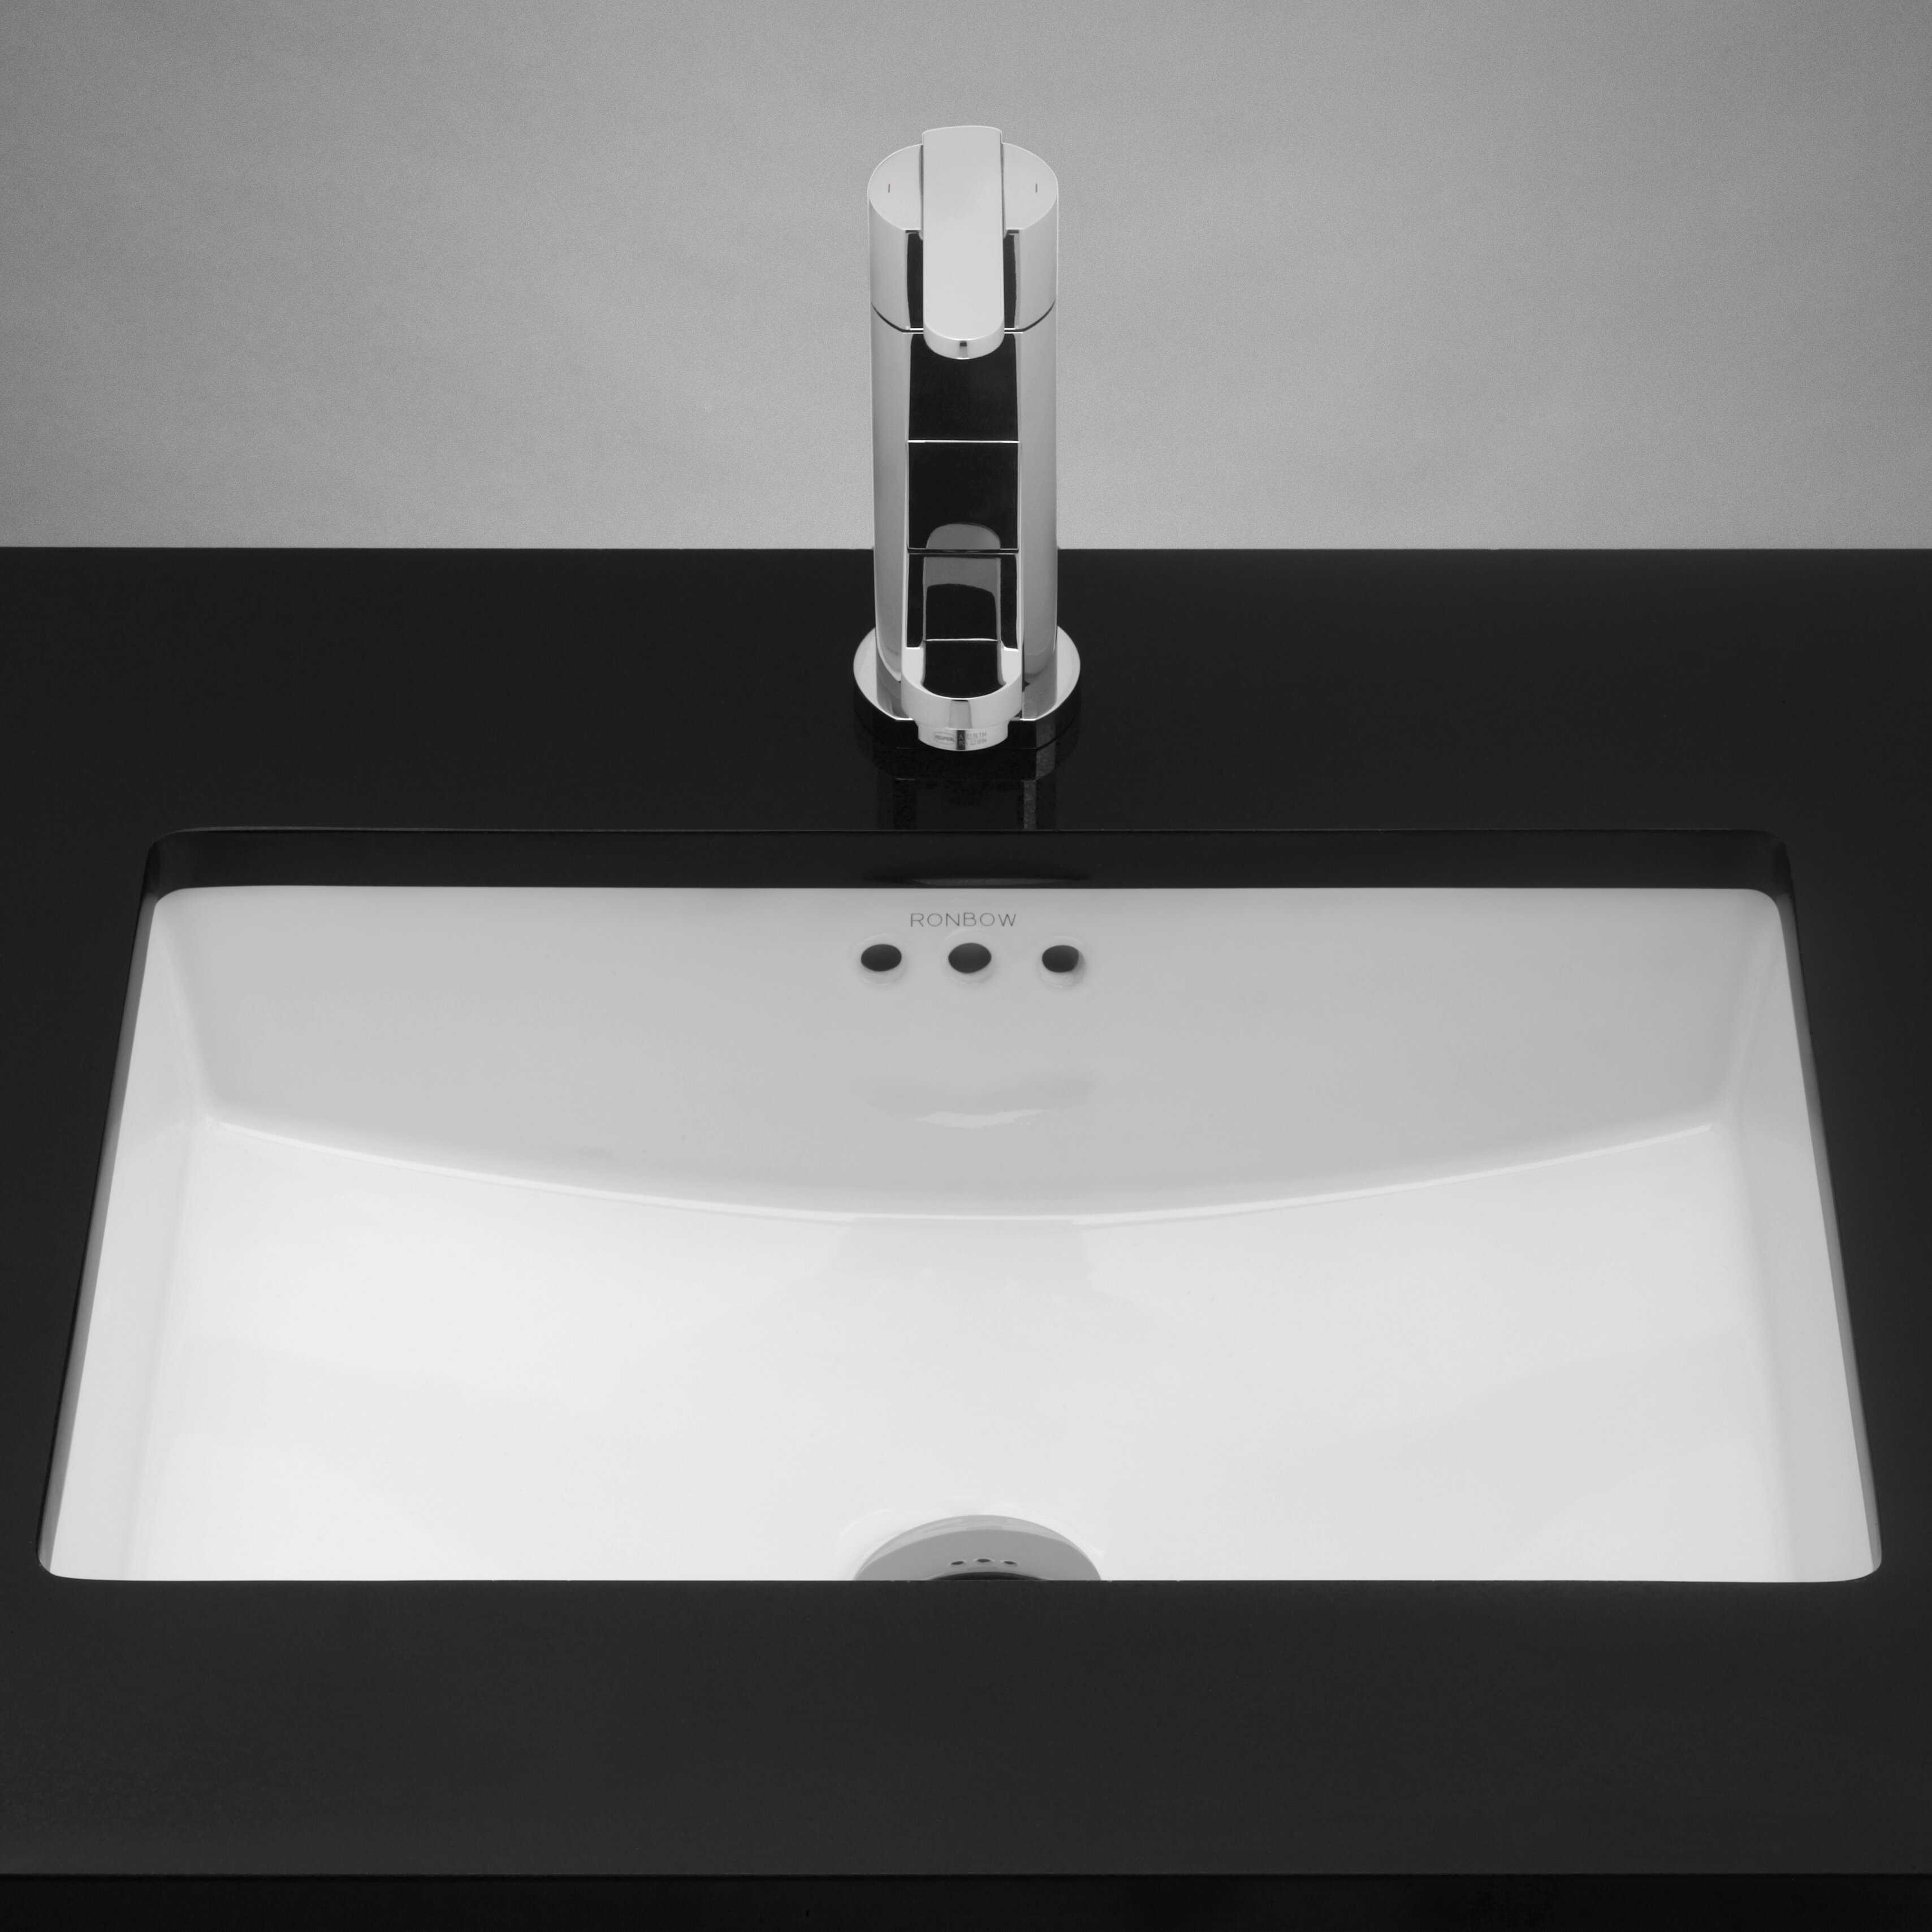 Undermount Square Bathroom Sink : ronbow rectangular ceramic undermount bathroom sink in white